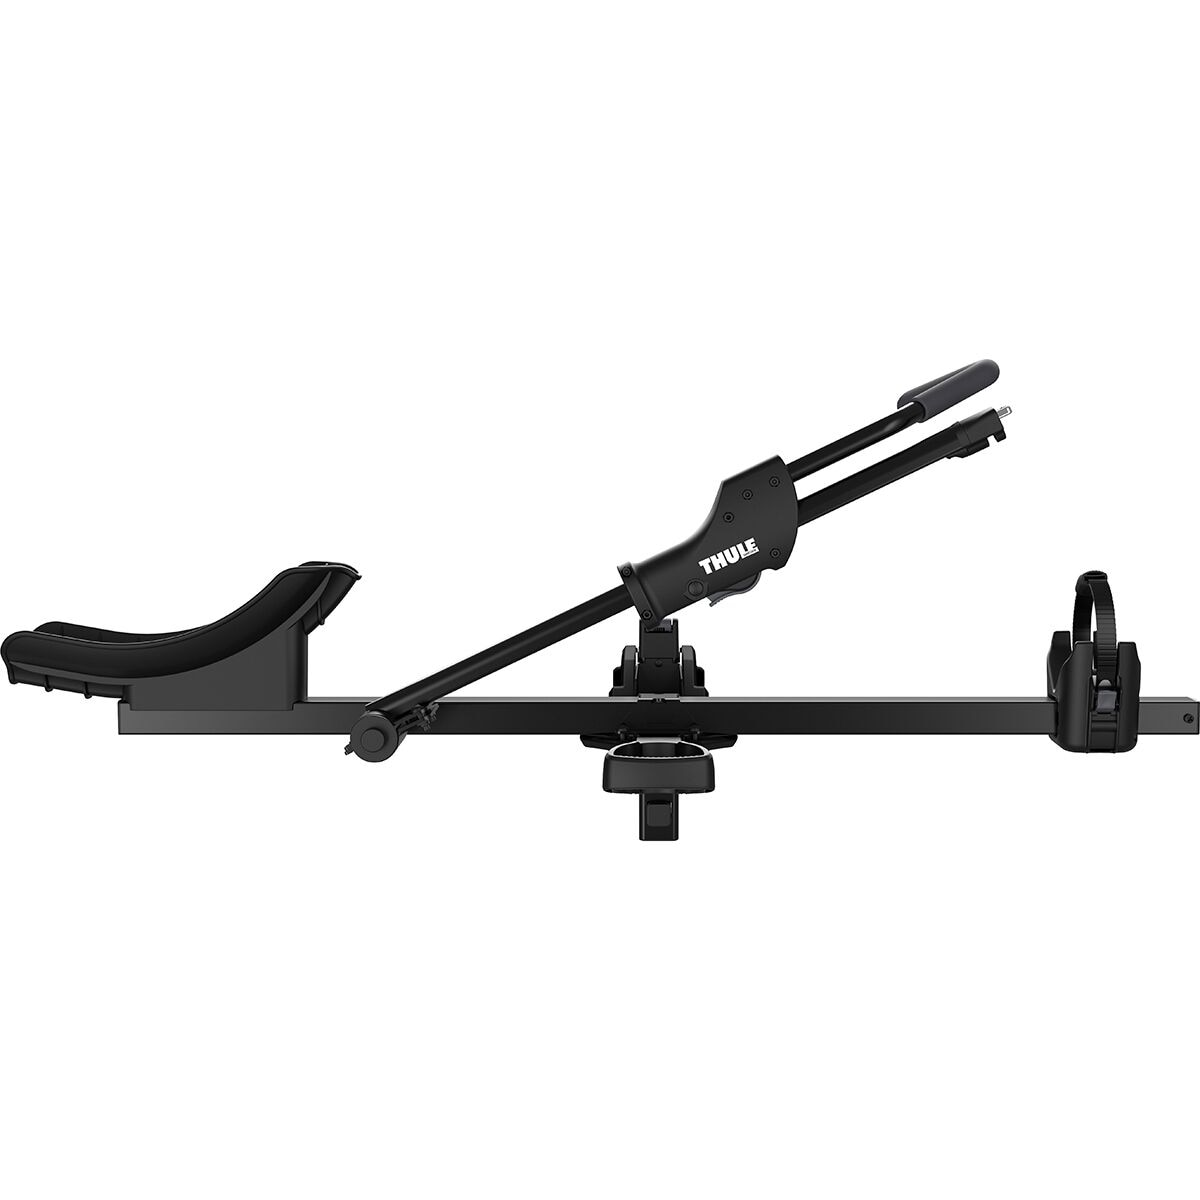 Thule T1 Single Bike Hitch Rack Black, 2in and 1.25in